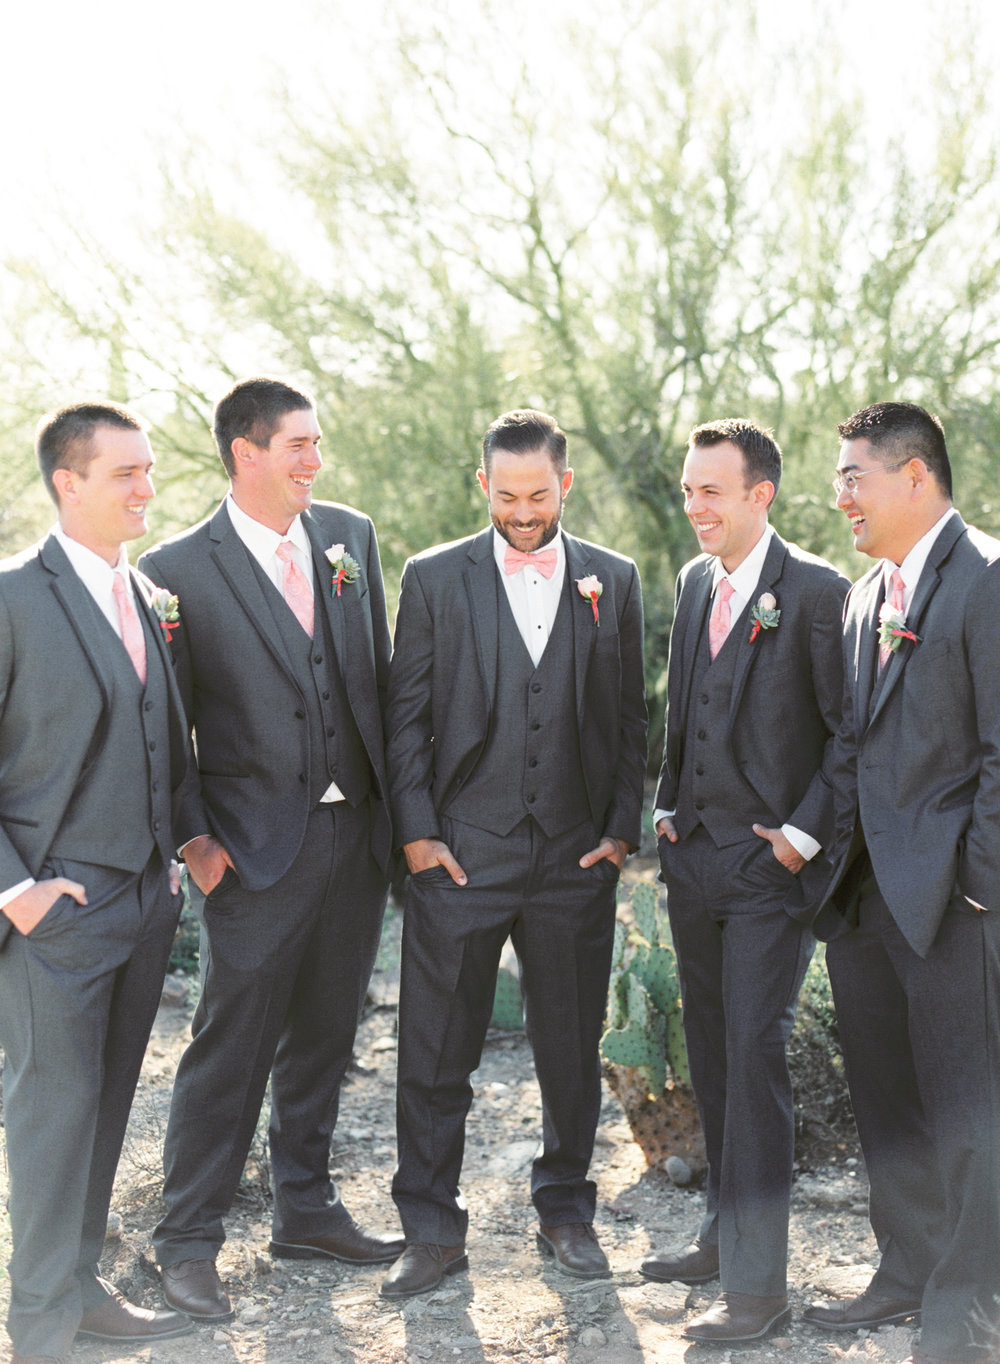 Groomsmen laughing in gray suits